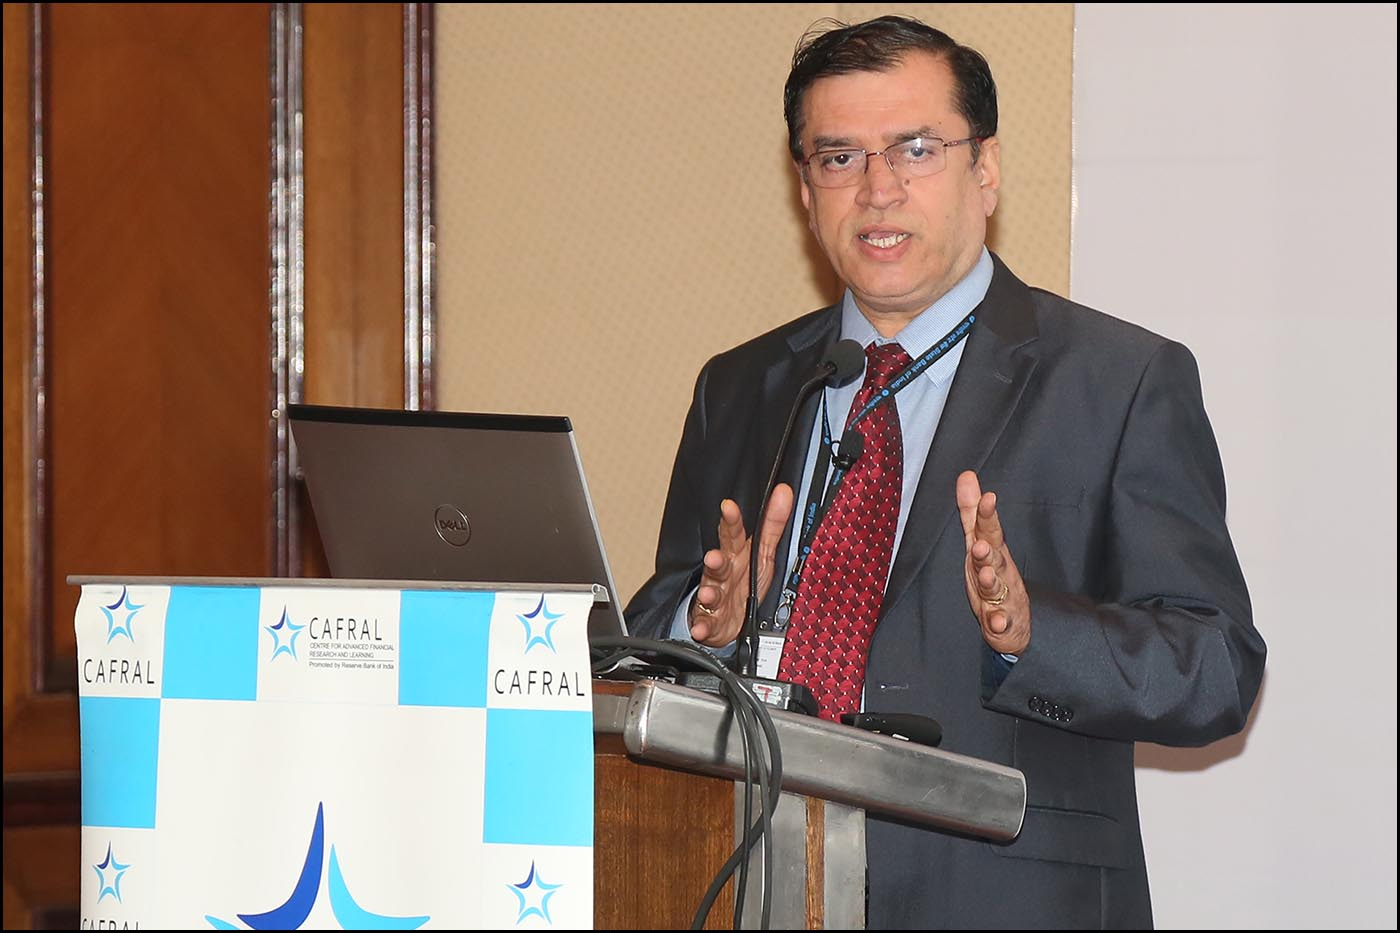 S. Muralidharan, General Manager, State Bank of India